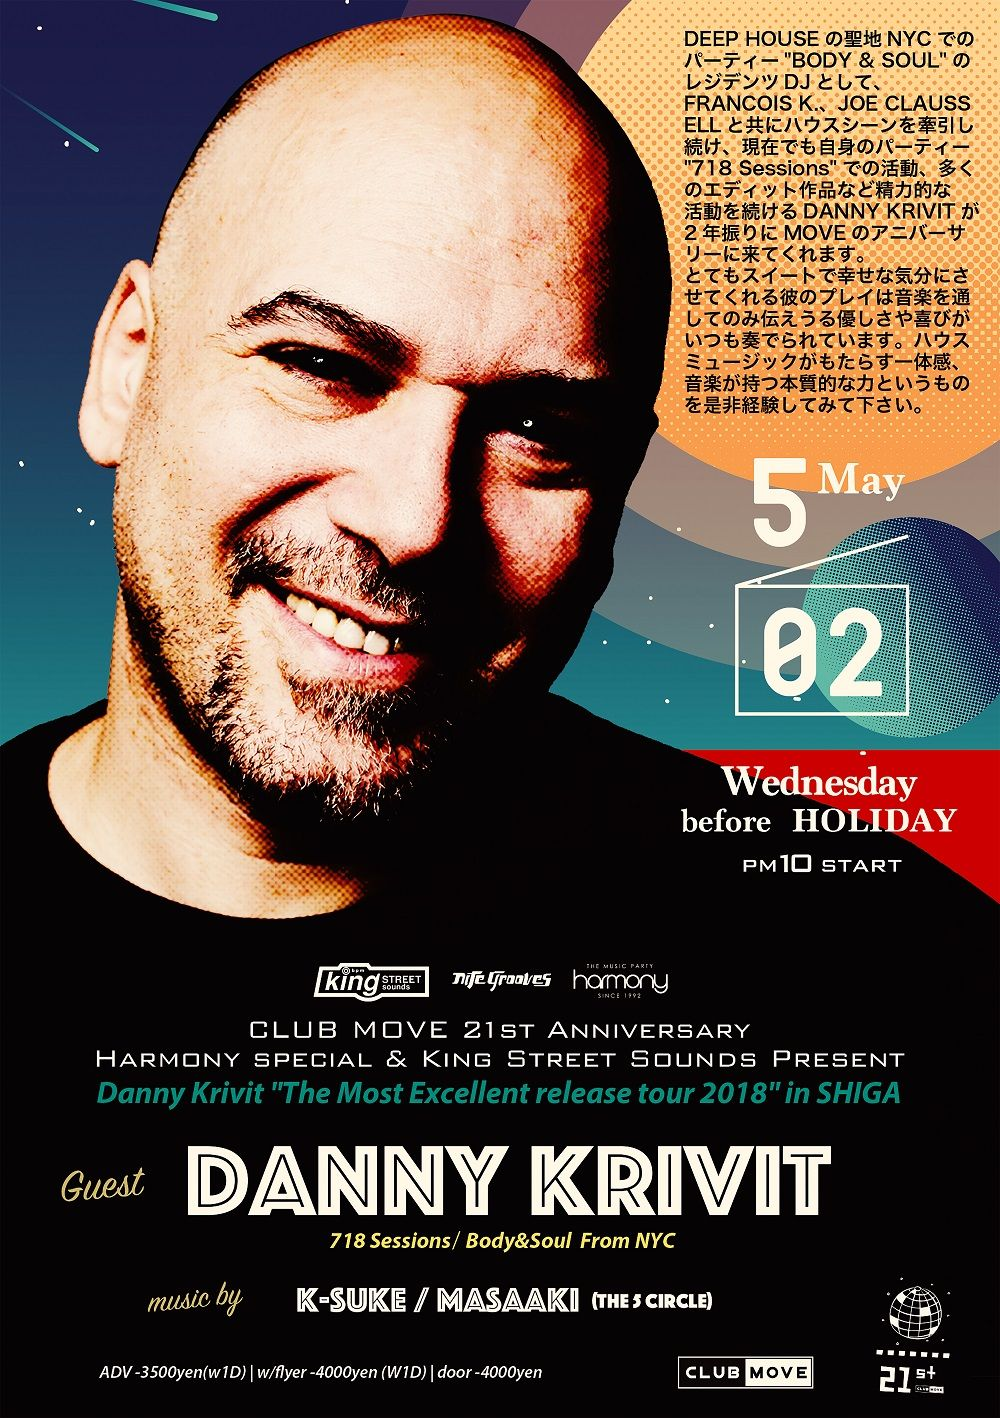 CLUB MOVE 21th Anniversary  Harmony special & King Street Sounds Presents  Danny krivit The Most Excellent release tour 2018 in SHIGA